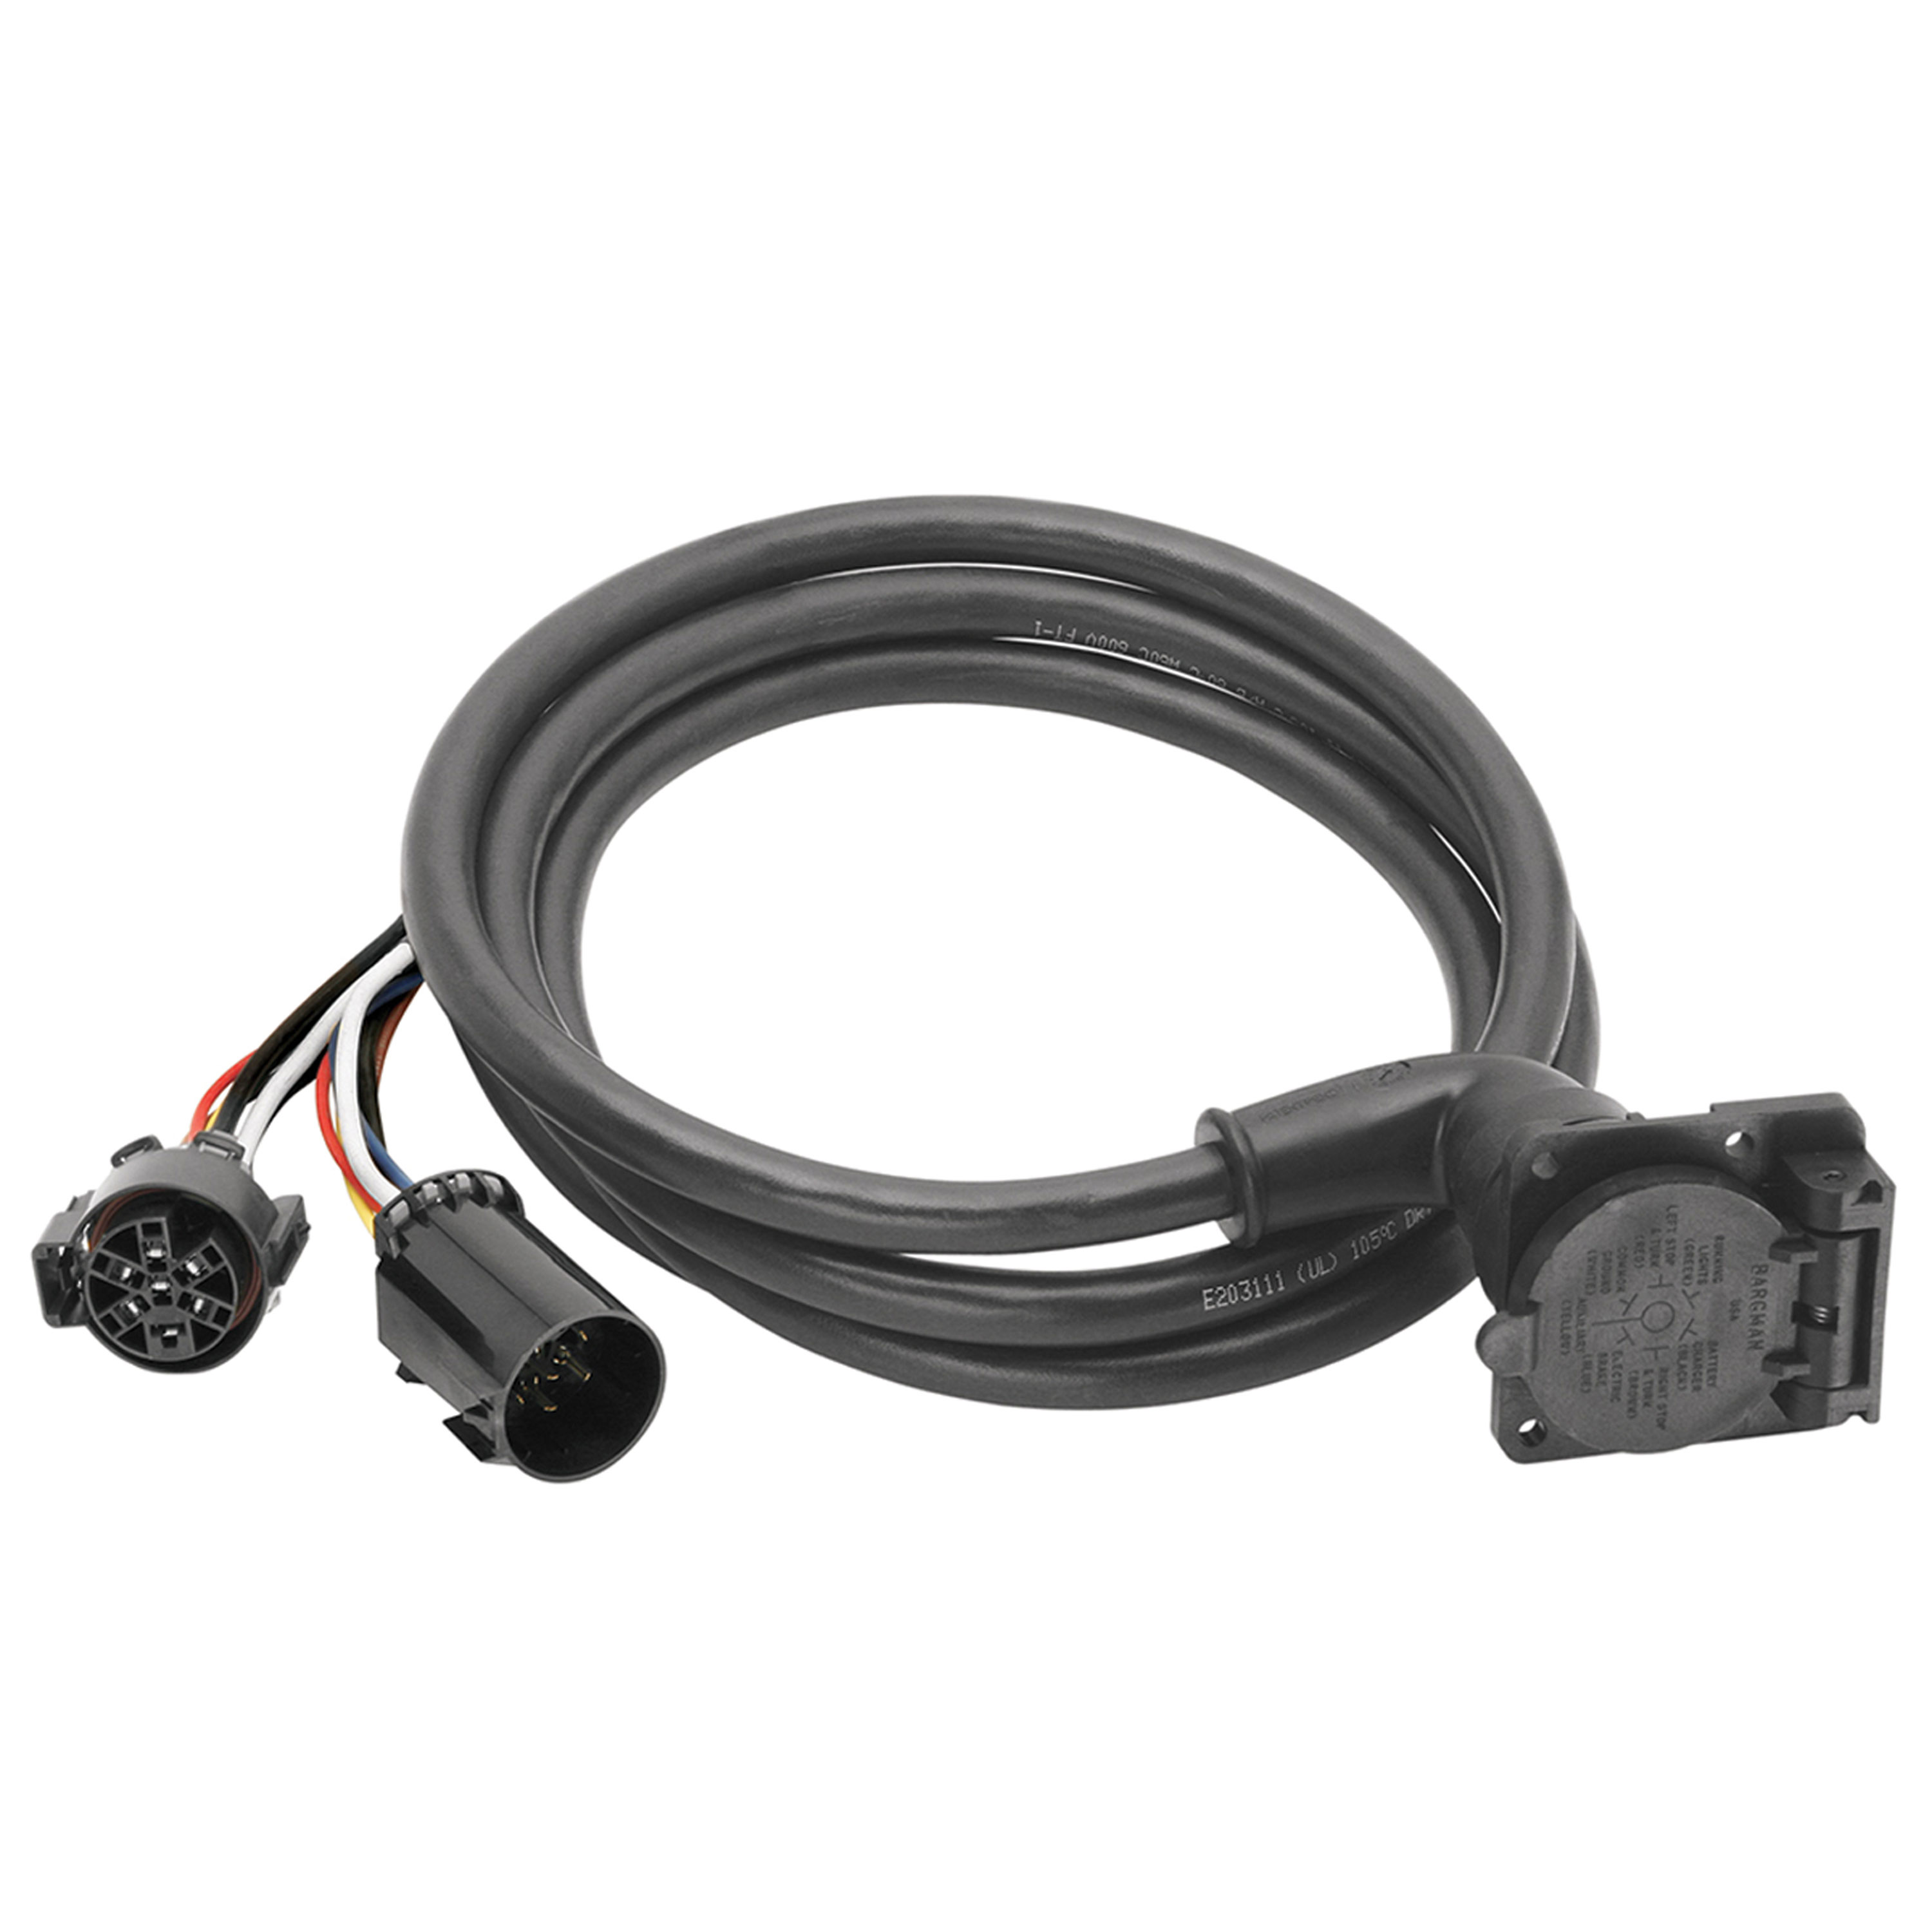 Bargman 51-97-410 7-Way 90° Fifth Wheel Adapter Harness w/ 9' Cable - Dodge, Ford, GM, Toyota